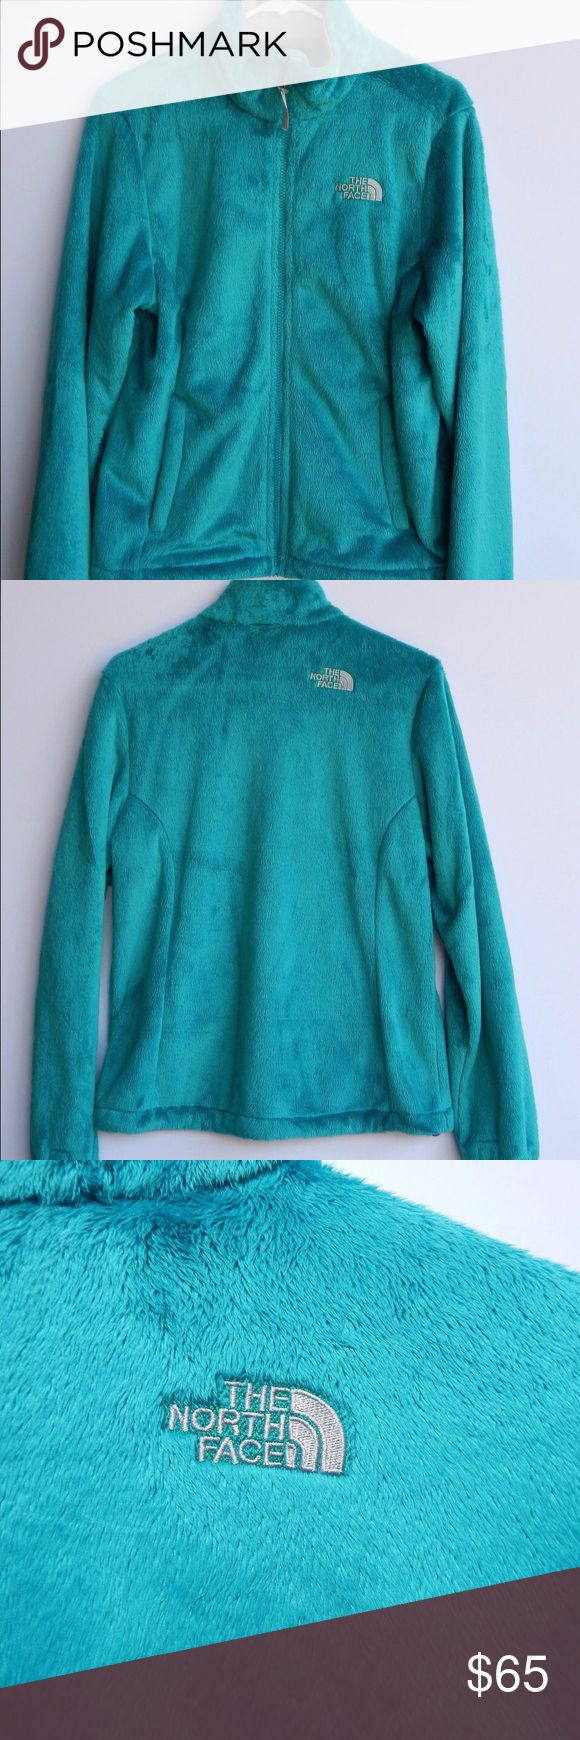 New North Face Fleece Jacket Super soft turquoise north face jacket! It is in new condition, never has been worn but only tried on. Prices are always negotiable The North Face Jackets & Coats